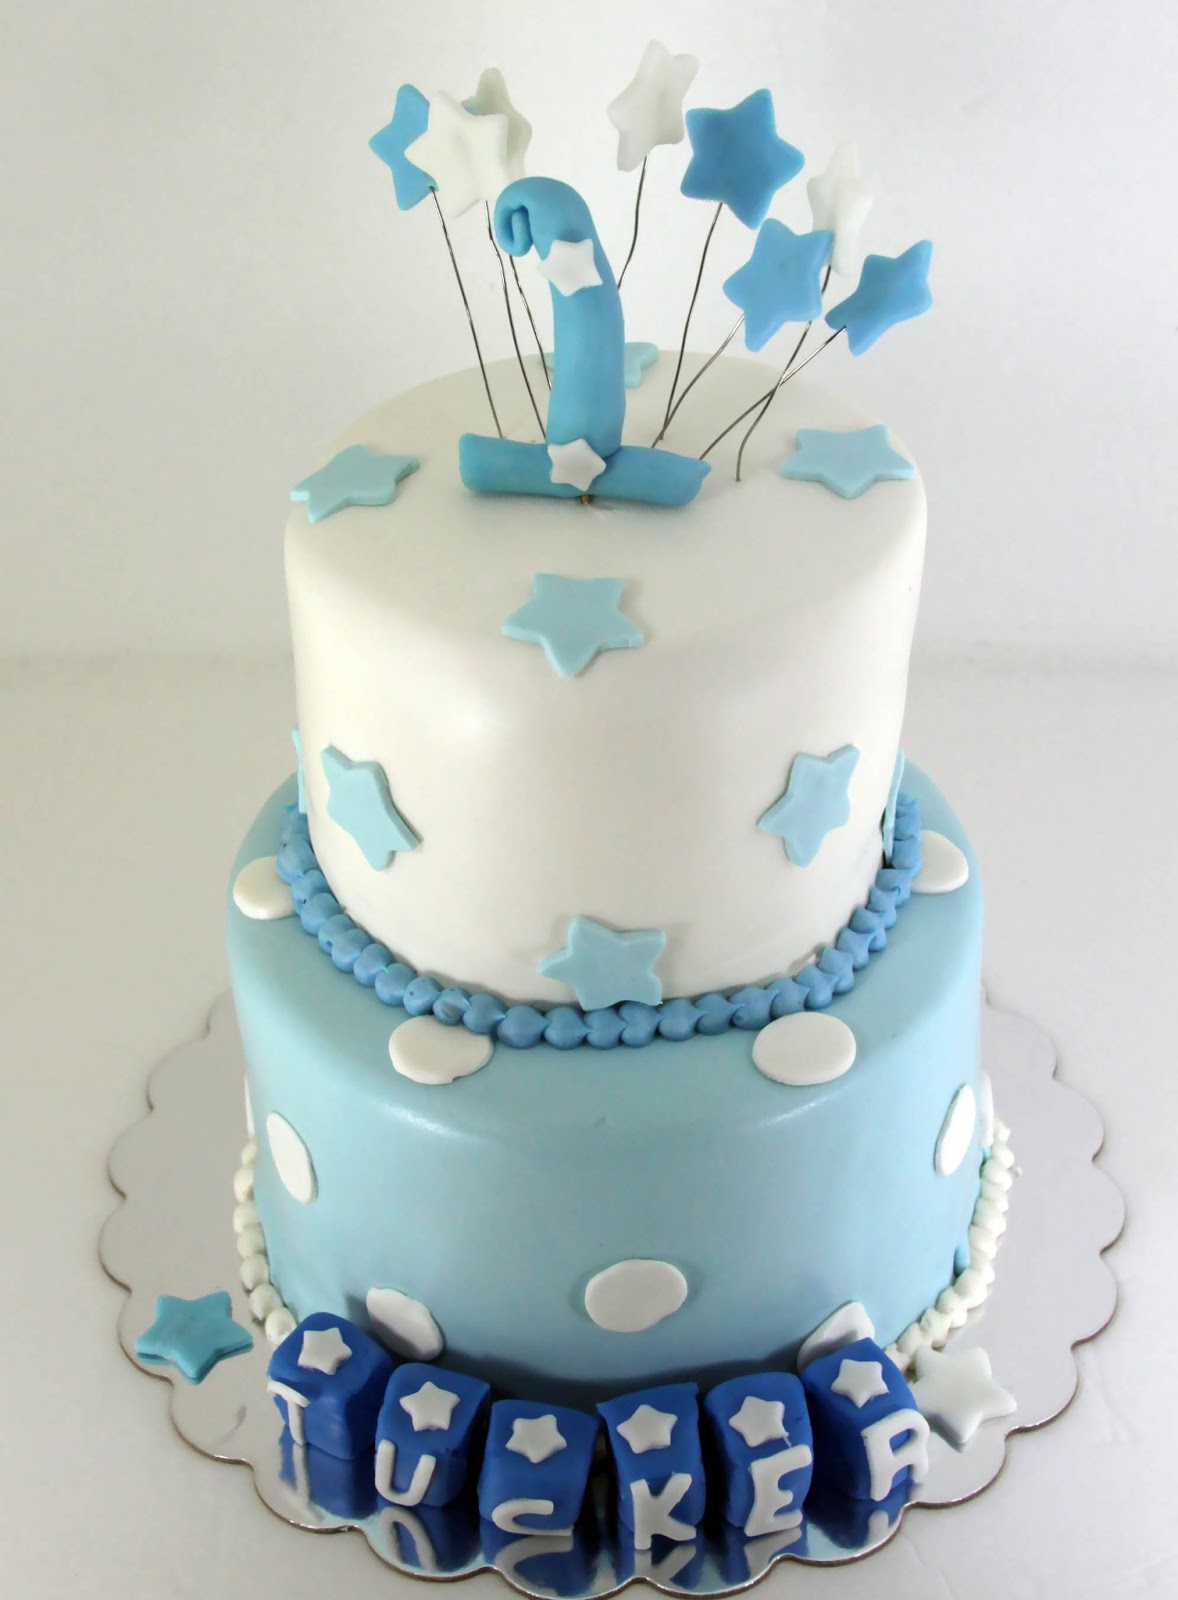 Tastefully Done: Baby Boy Blue 1st Birthday Cake